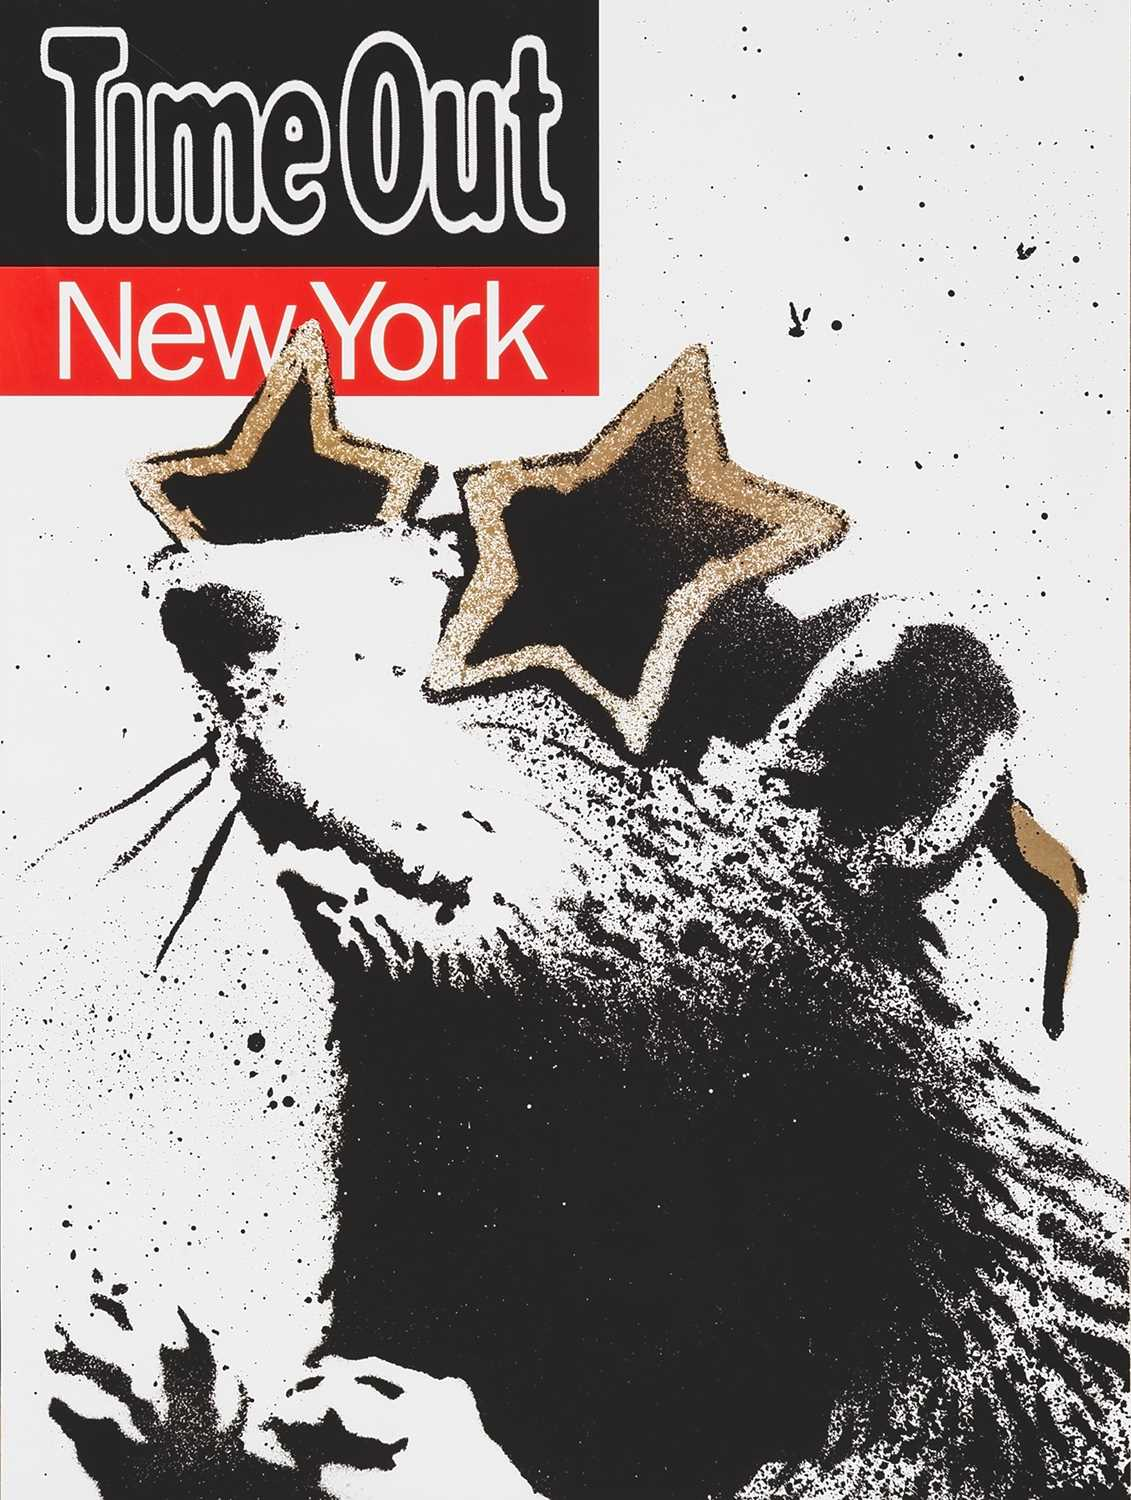 Lot 74 - Banksy (British 1974-), 'Time Out New York', 2010